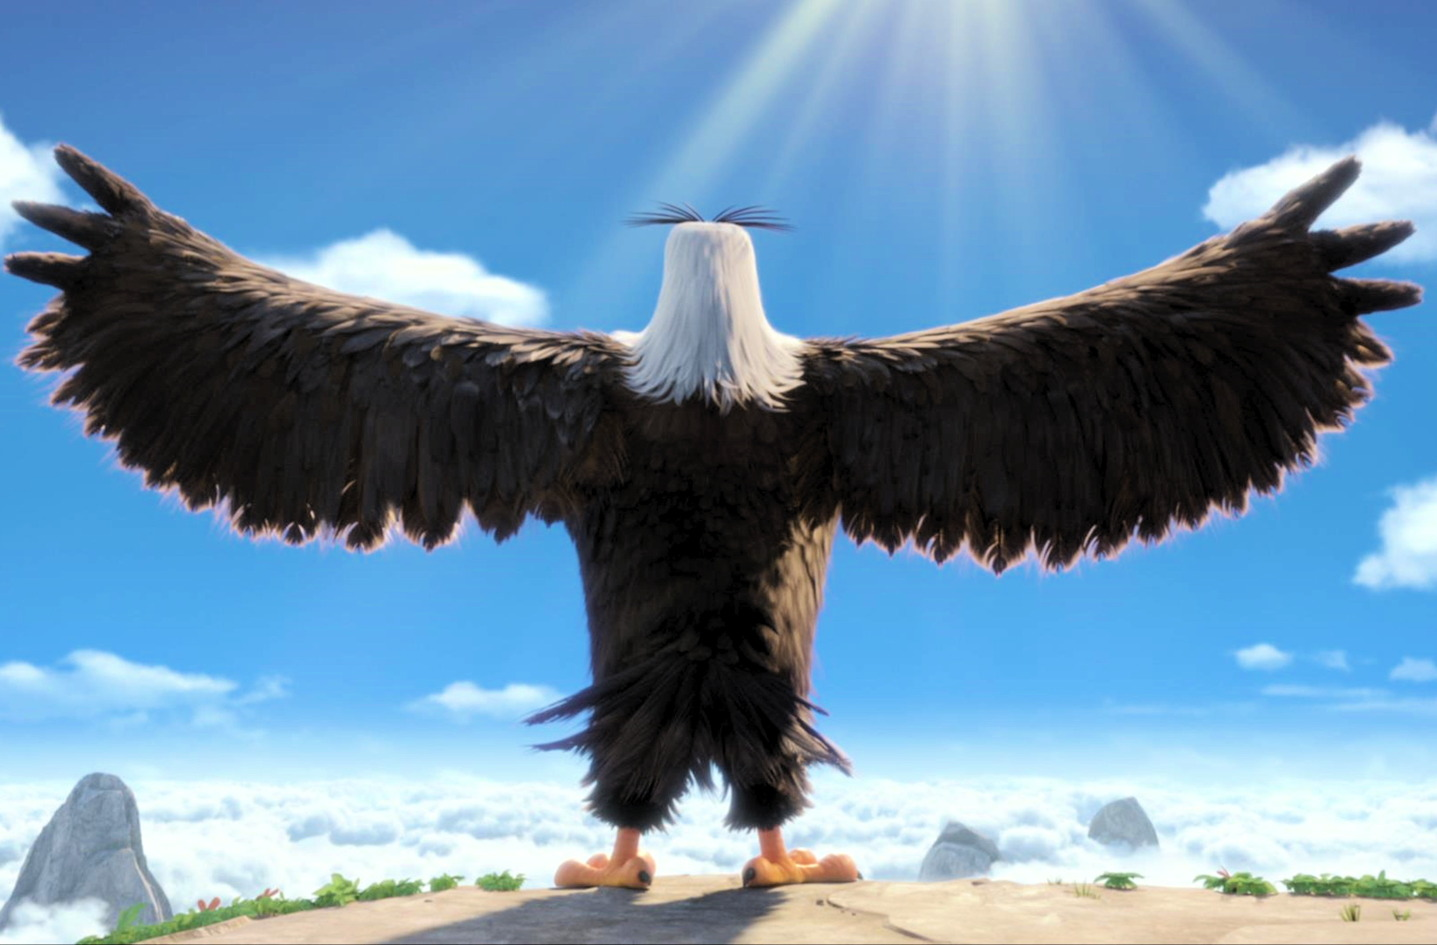 eagle-angry-birds-movie